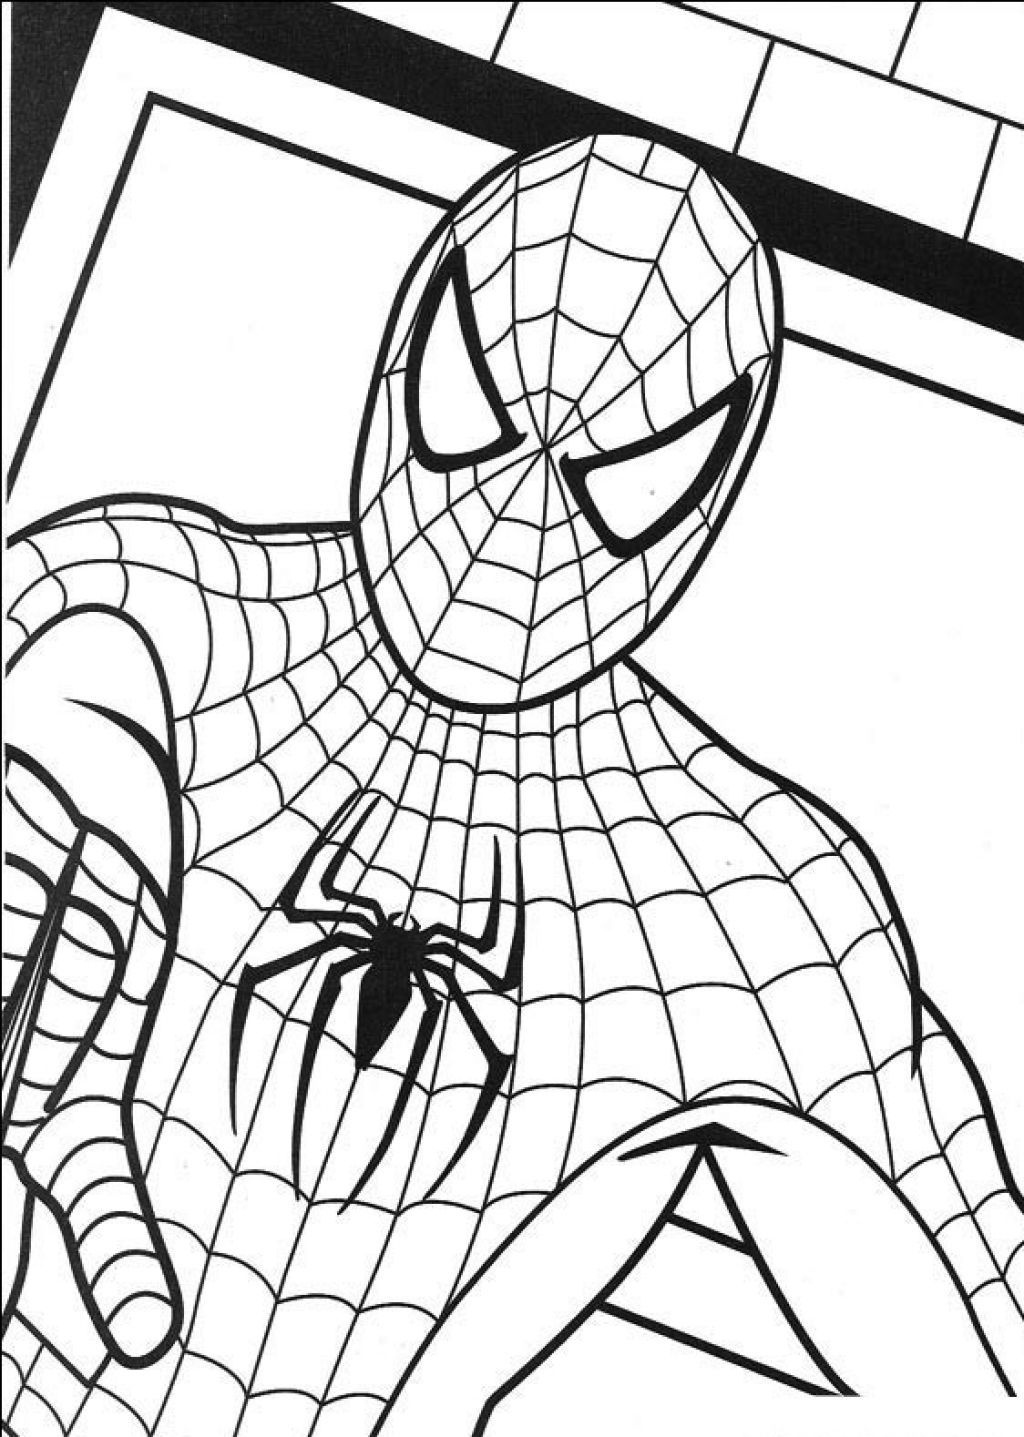 Free Printable Spiderman Coloring Pages For Kids   Coloring Pages - Free Spiderman Printables